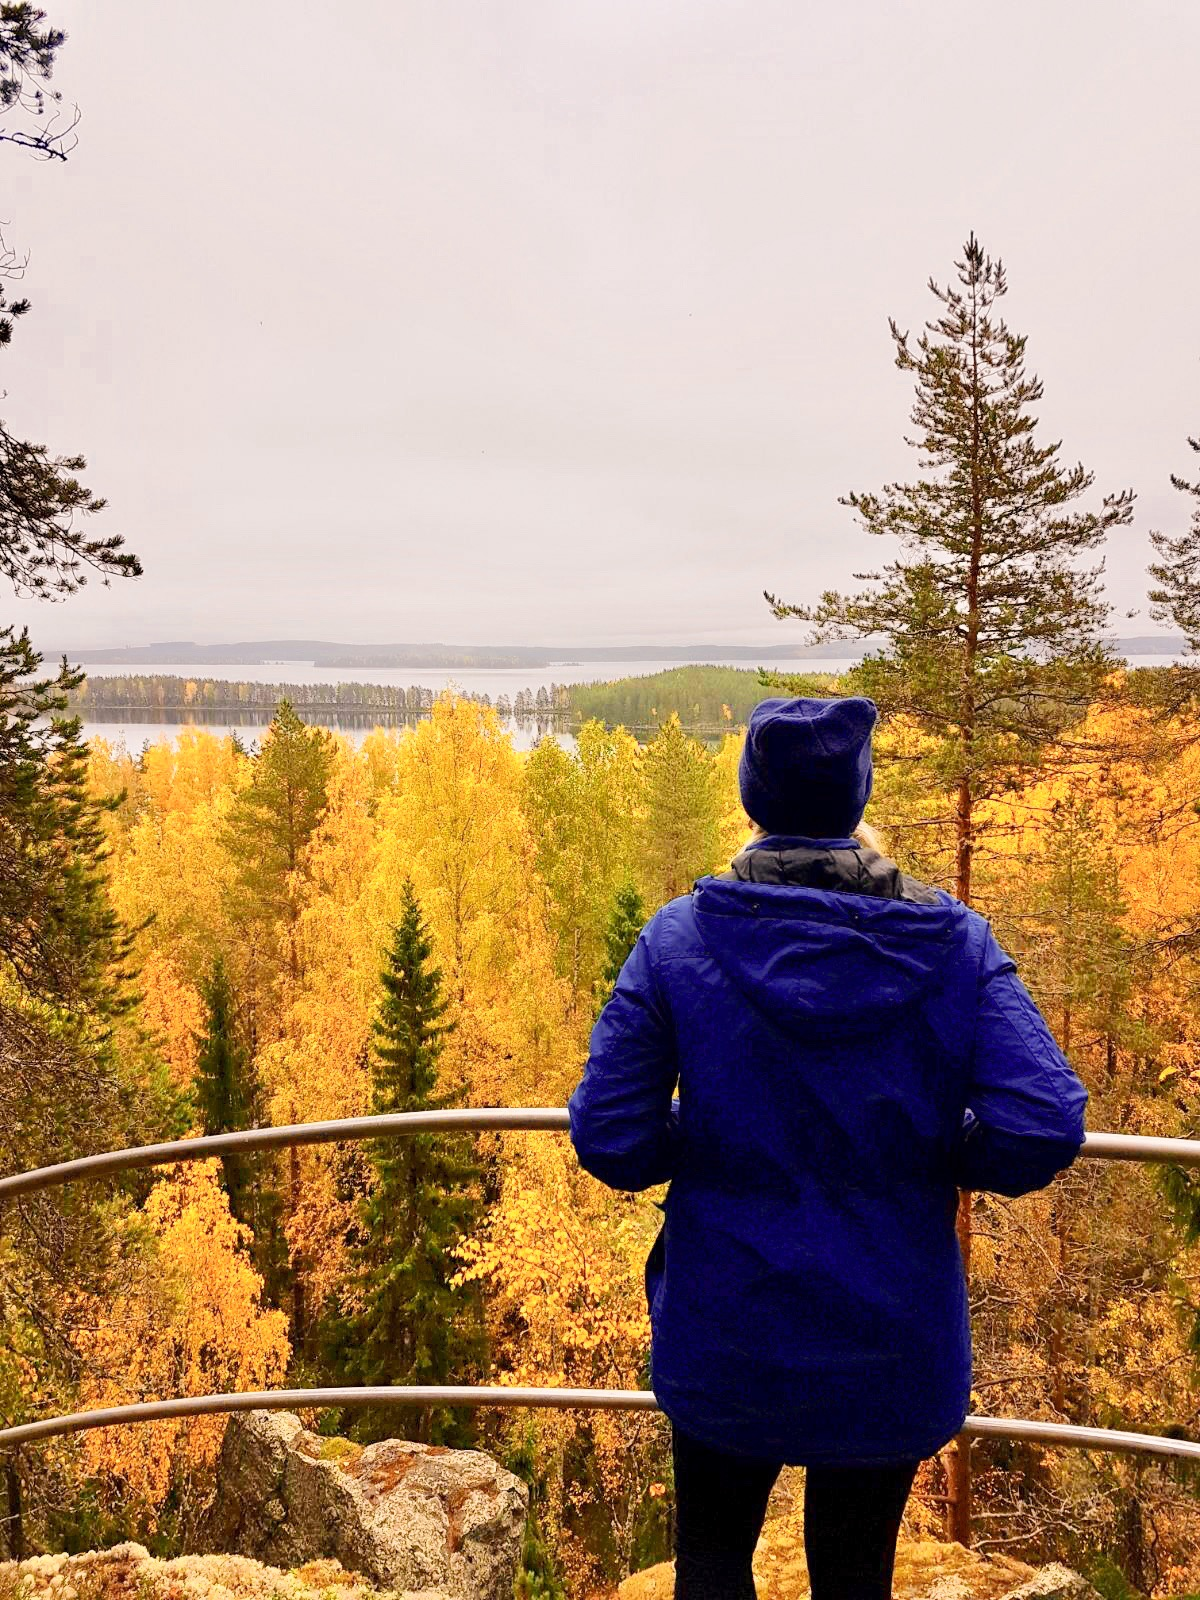 Best time to see fall foliage in Koli is the end of September and the beginning of October